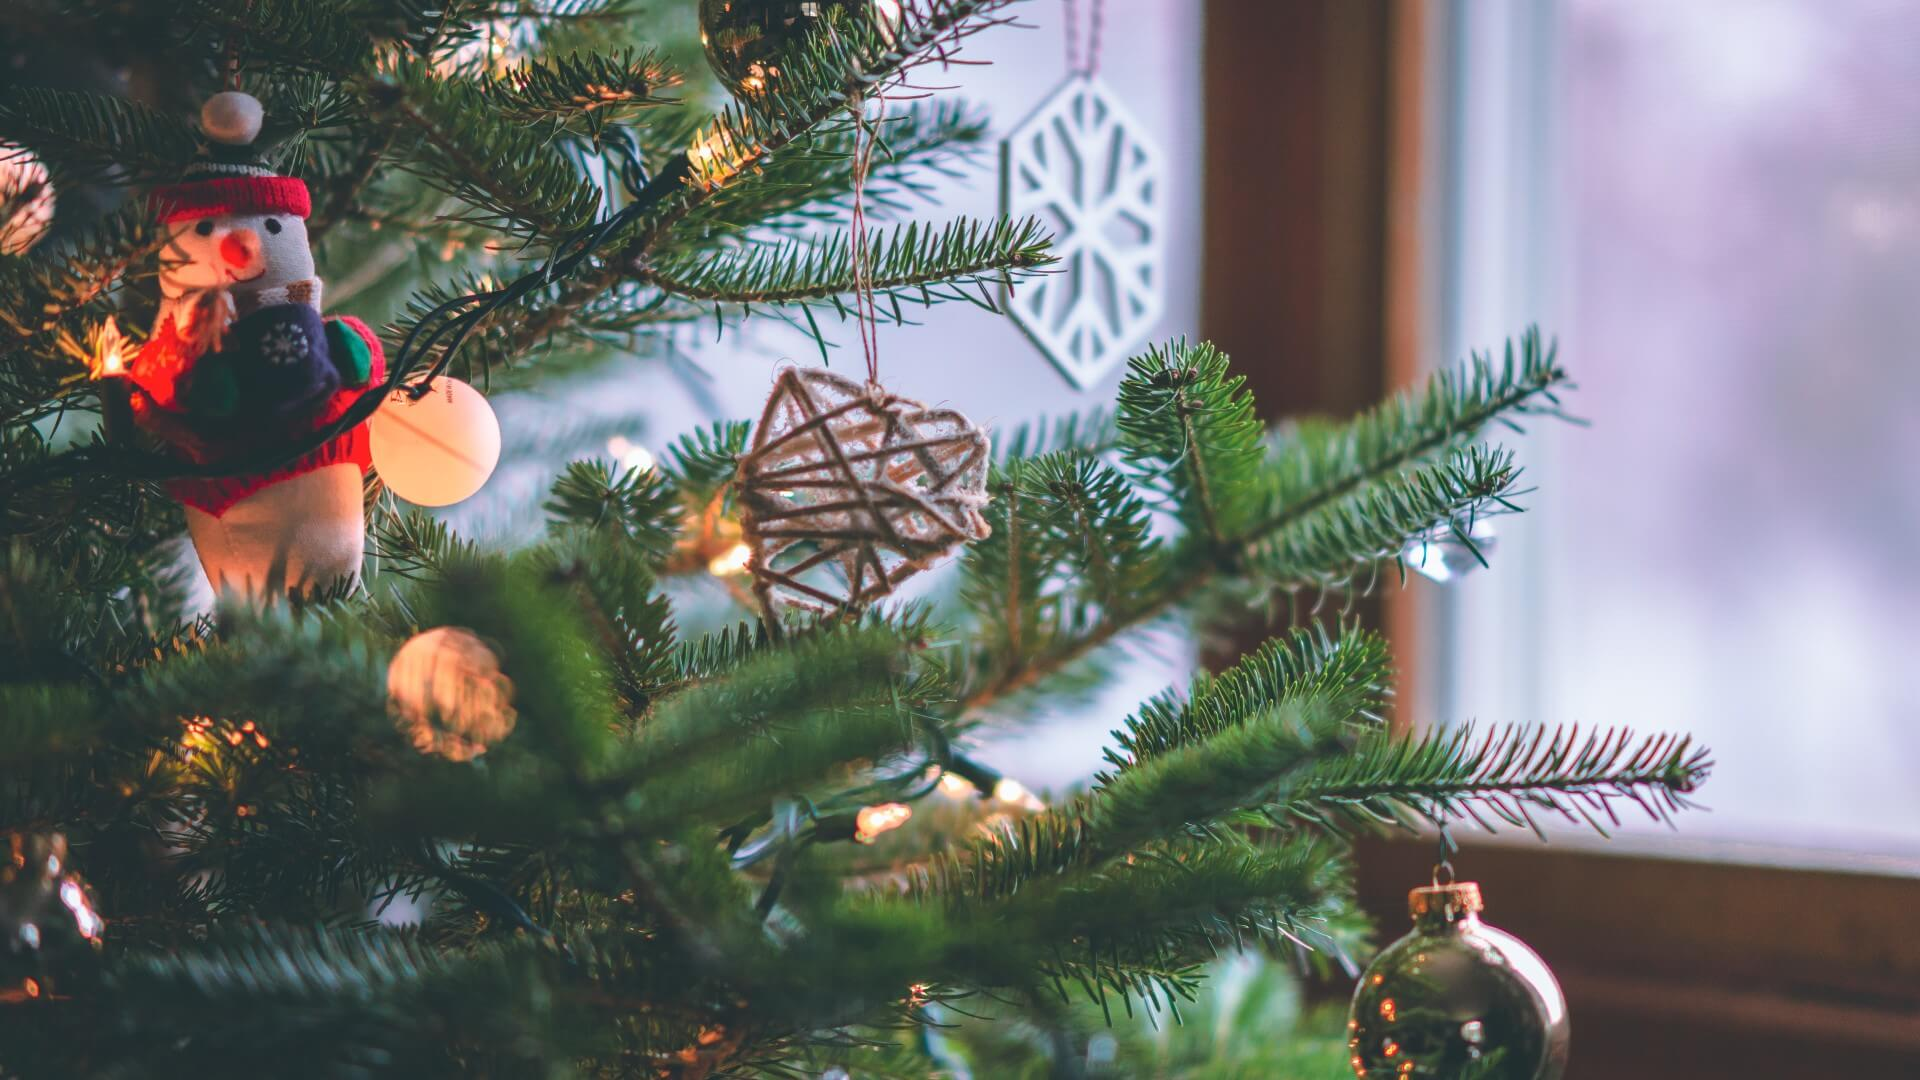 How to cope with grief at Christmas